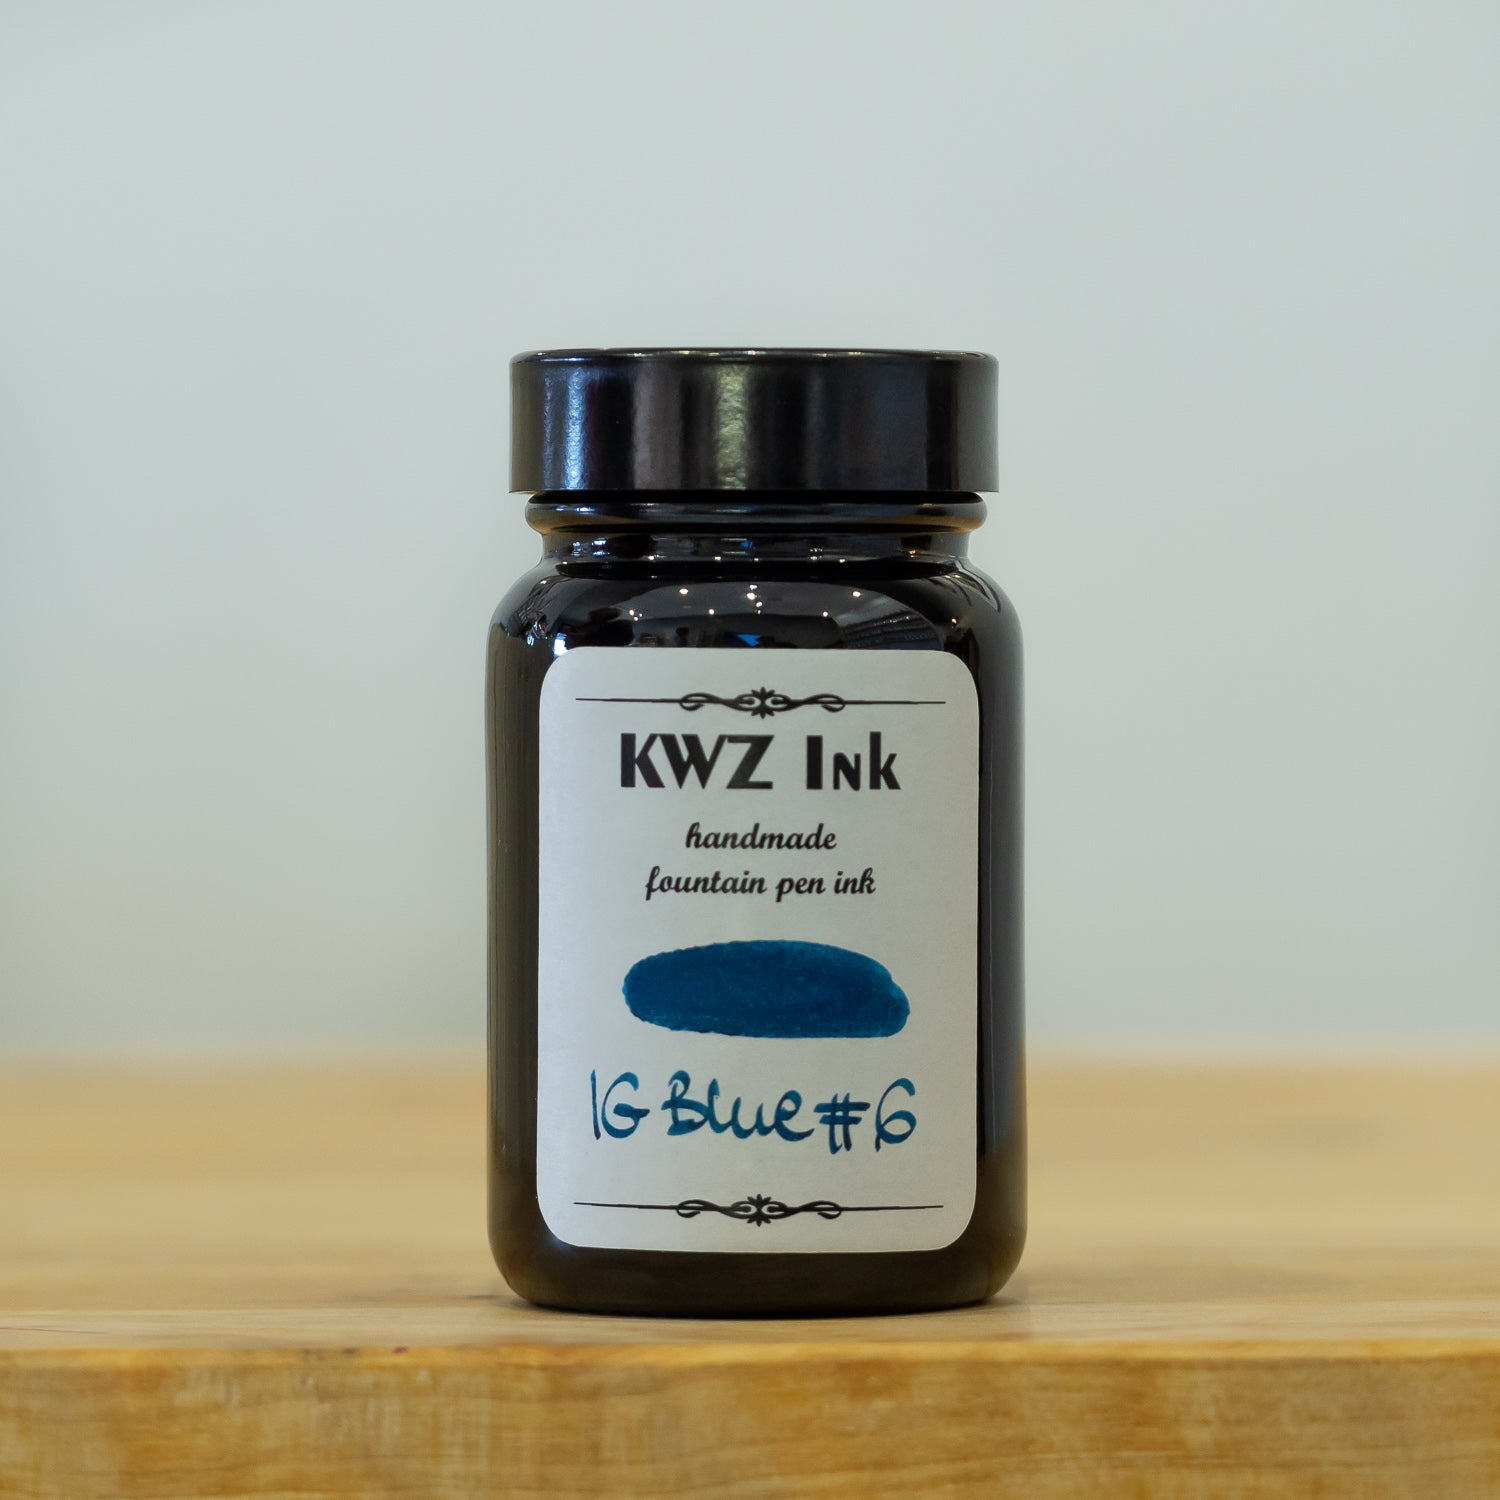 KWZ iron gall blue #6 fountain pen ink